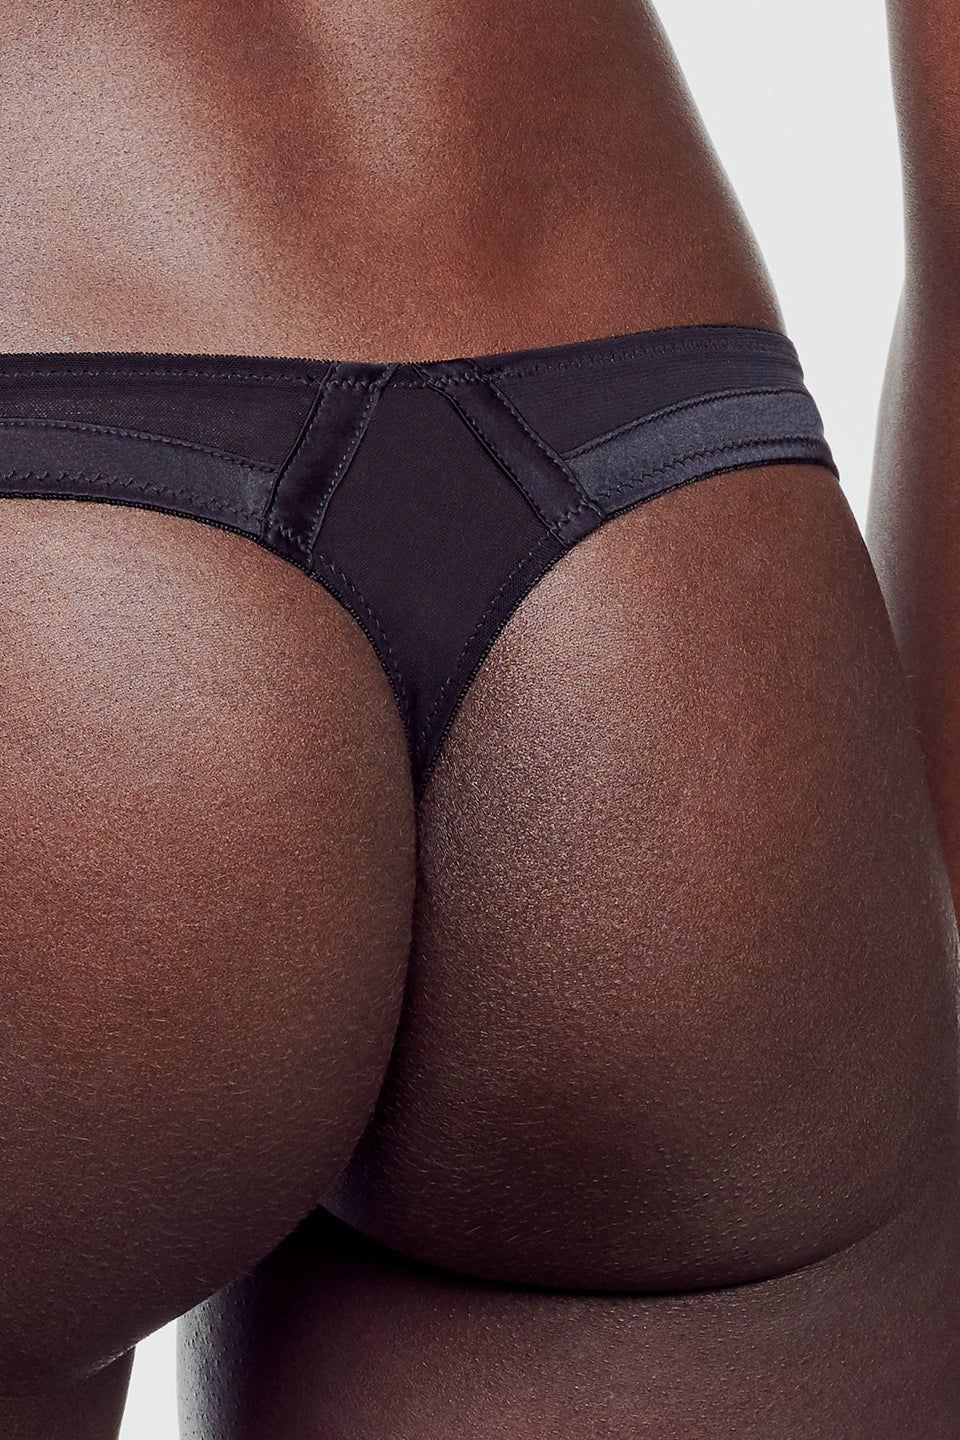 Expose Thong Black